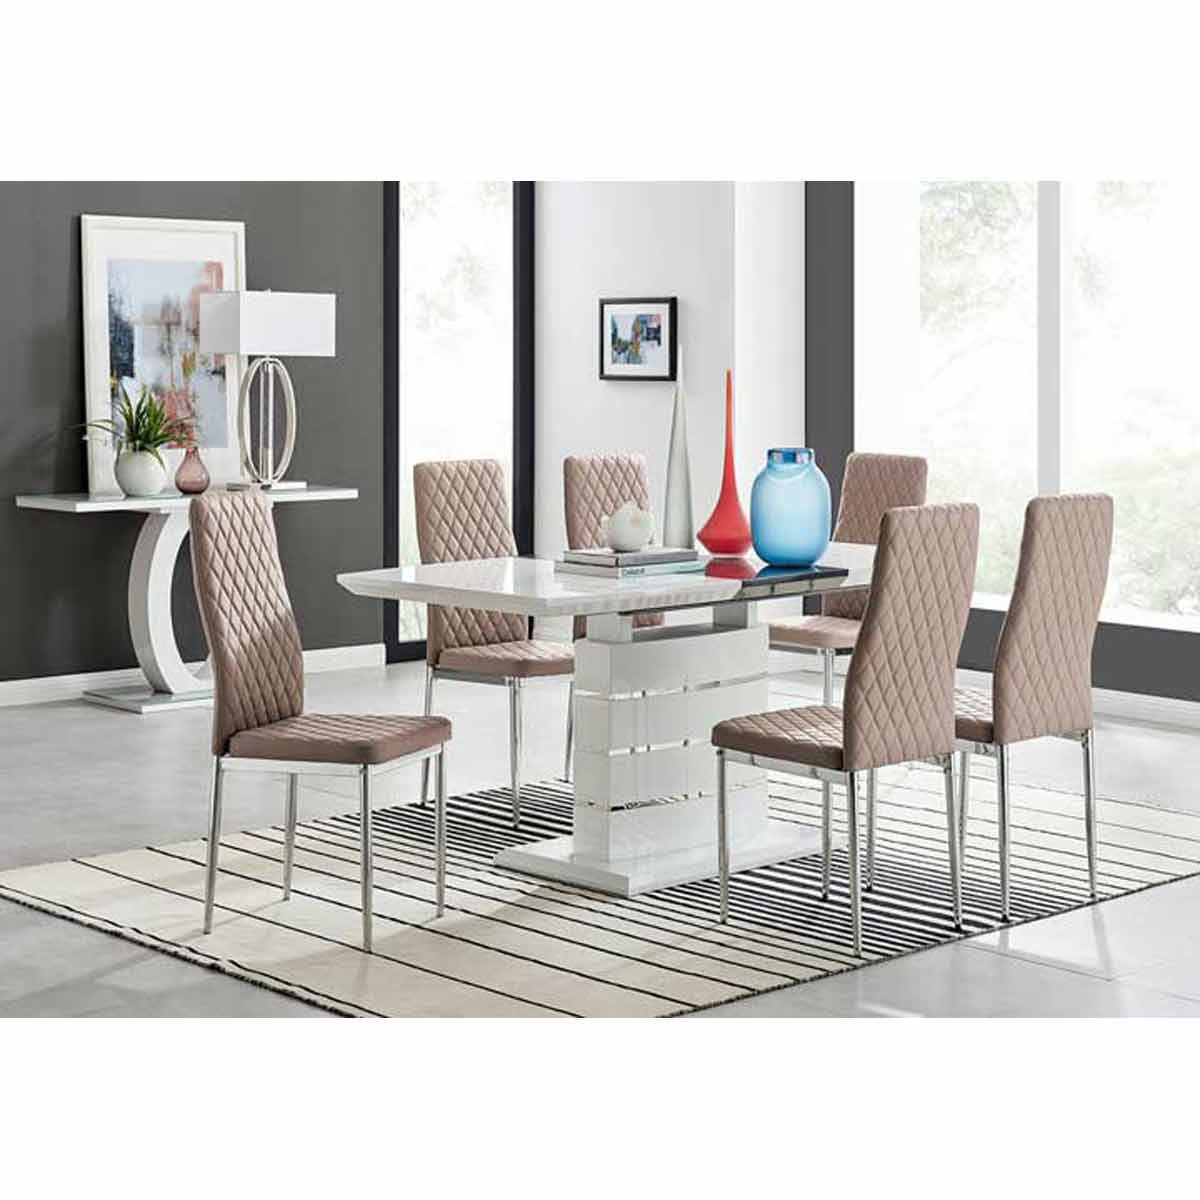 Furniture Box Renato 120cm High Gloss Extending Dining Table and 6 Cappuccino Milan Chairs